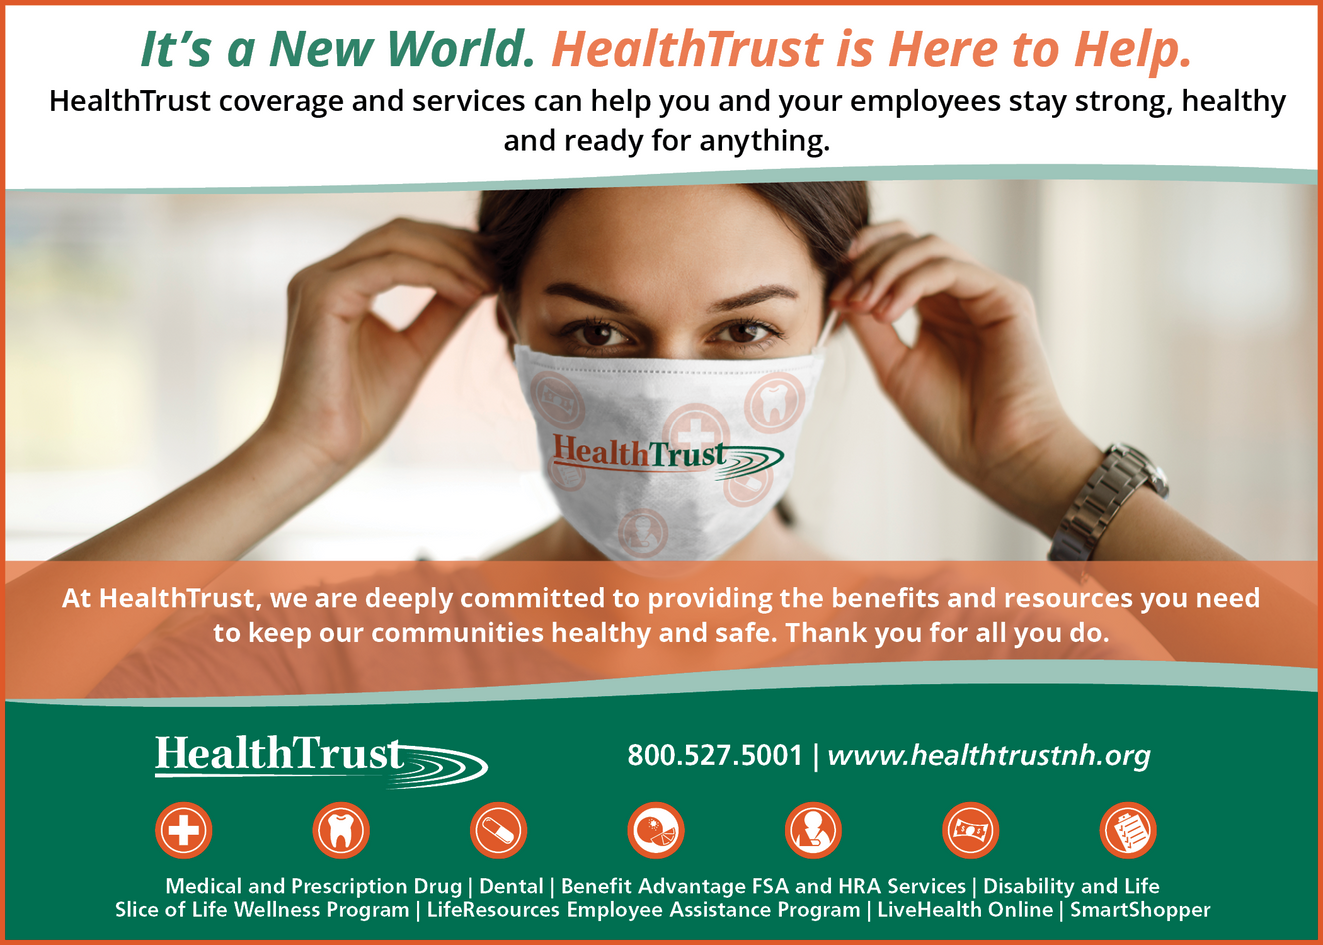 Gold Partner HealthTrust